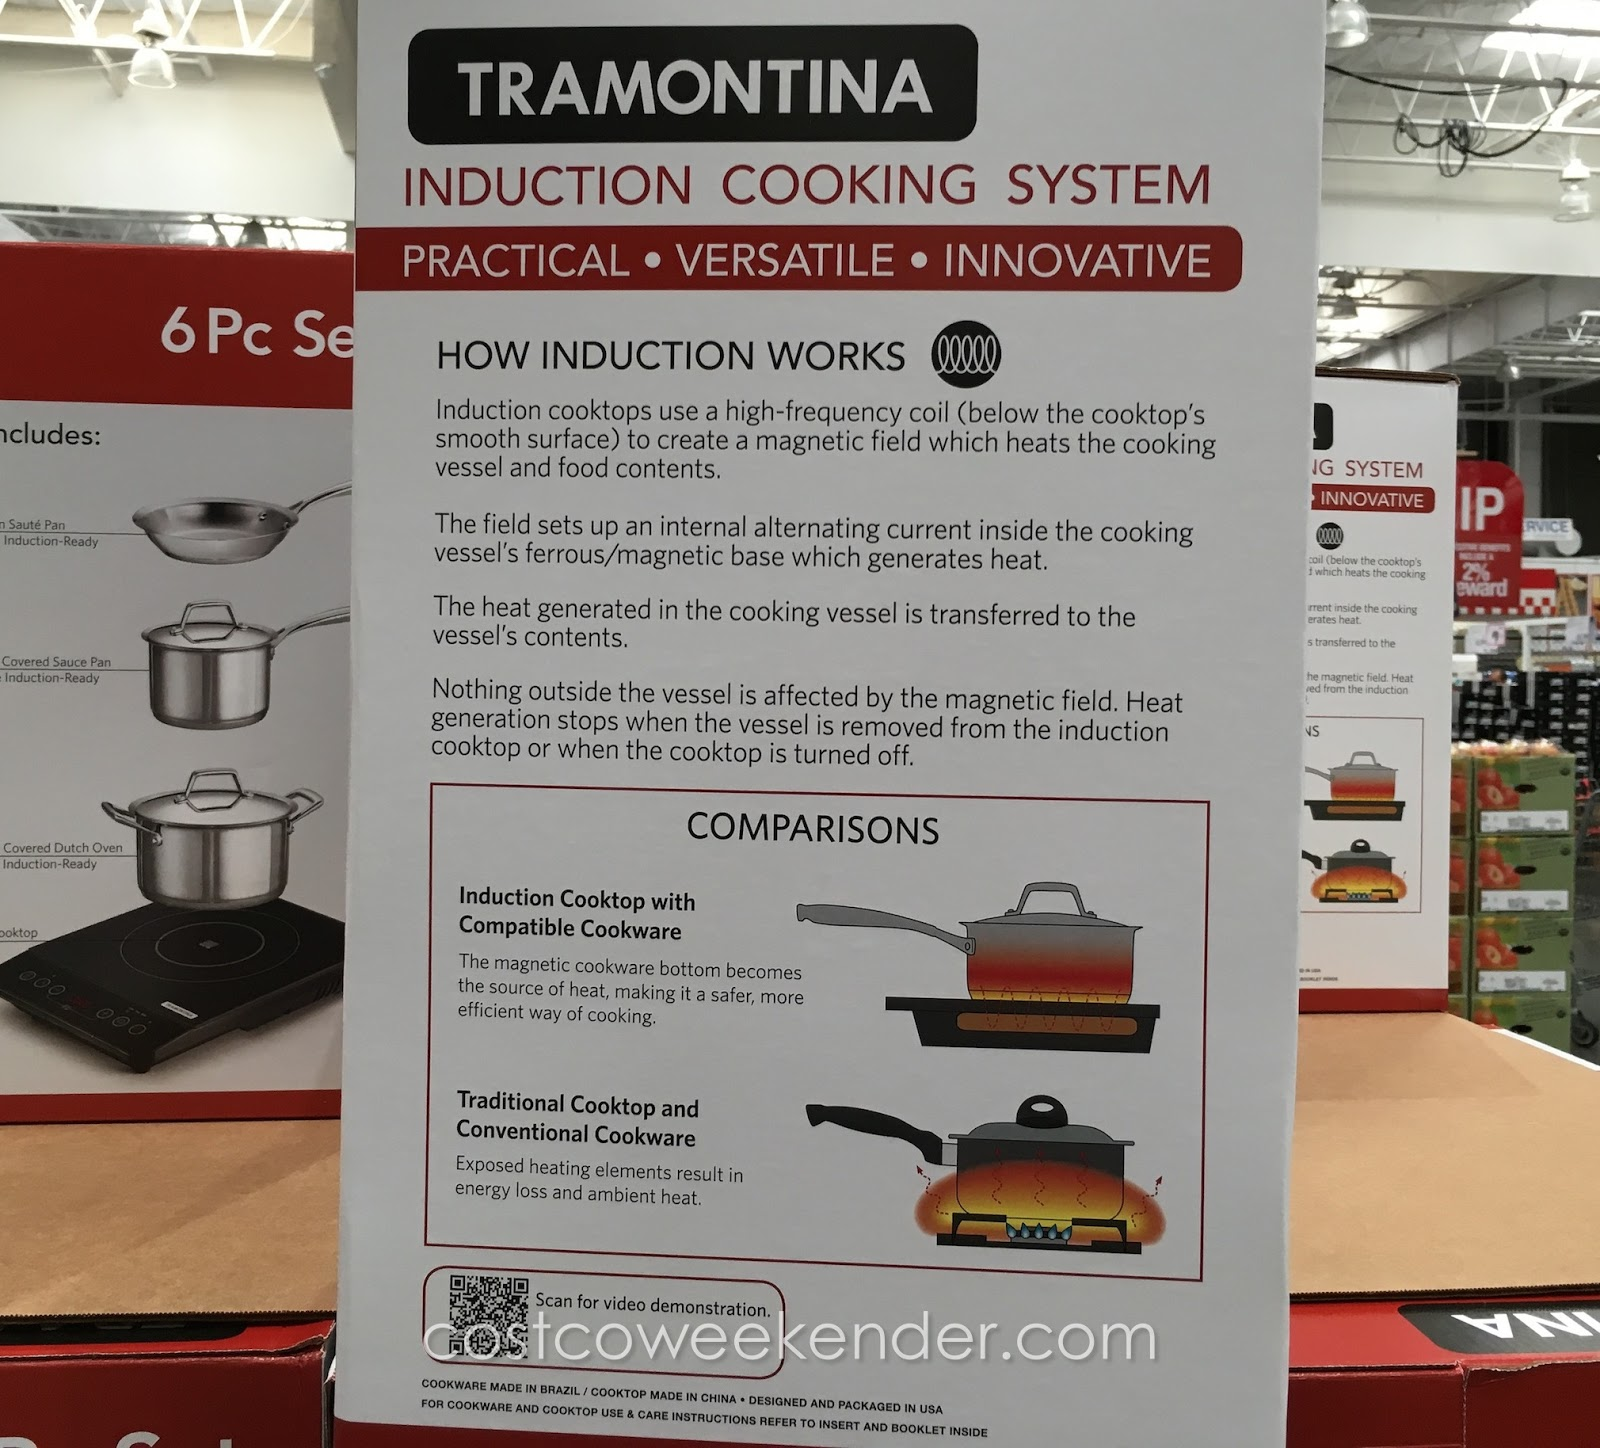 How Fast Is Induction Cooking ~ Tramontina induction cooking system piece set costco